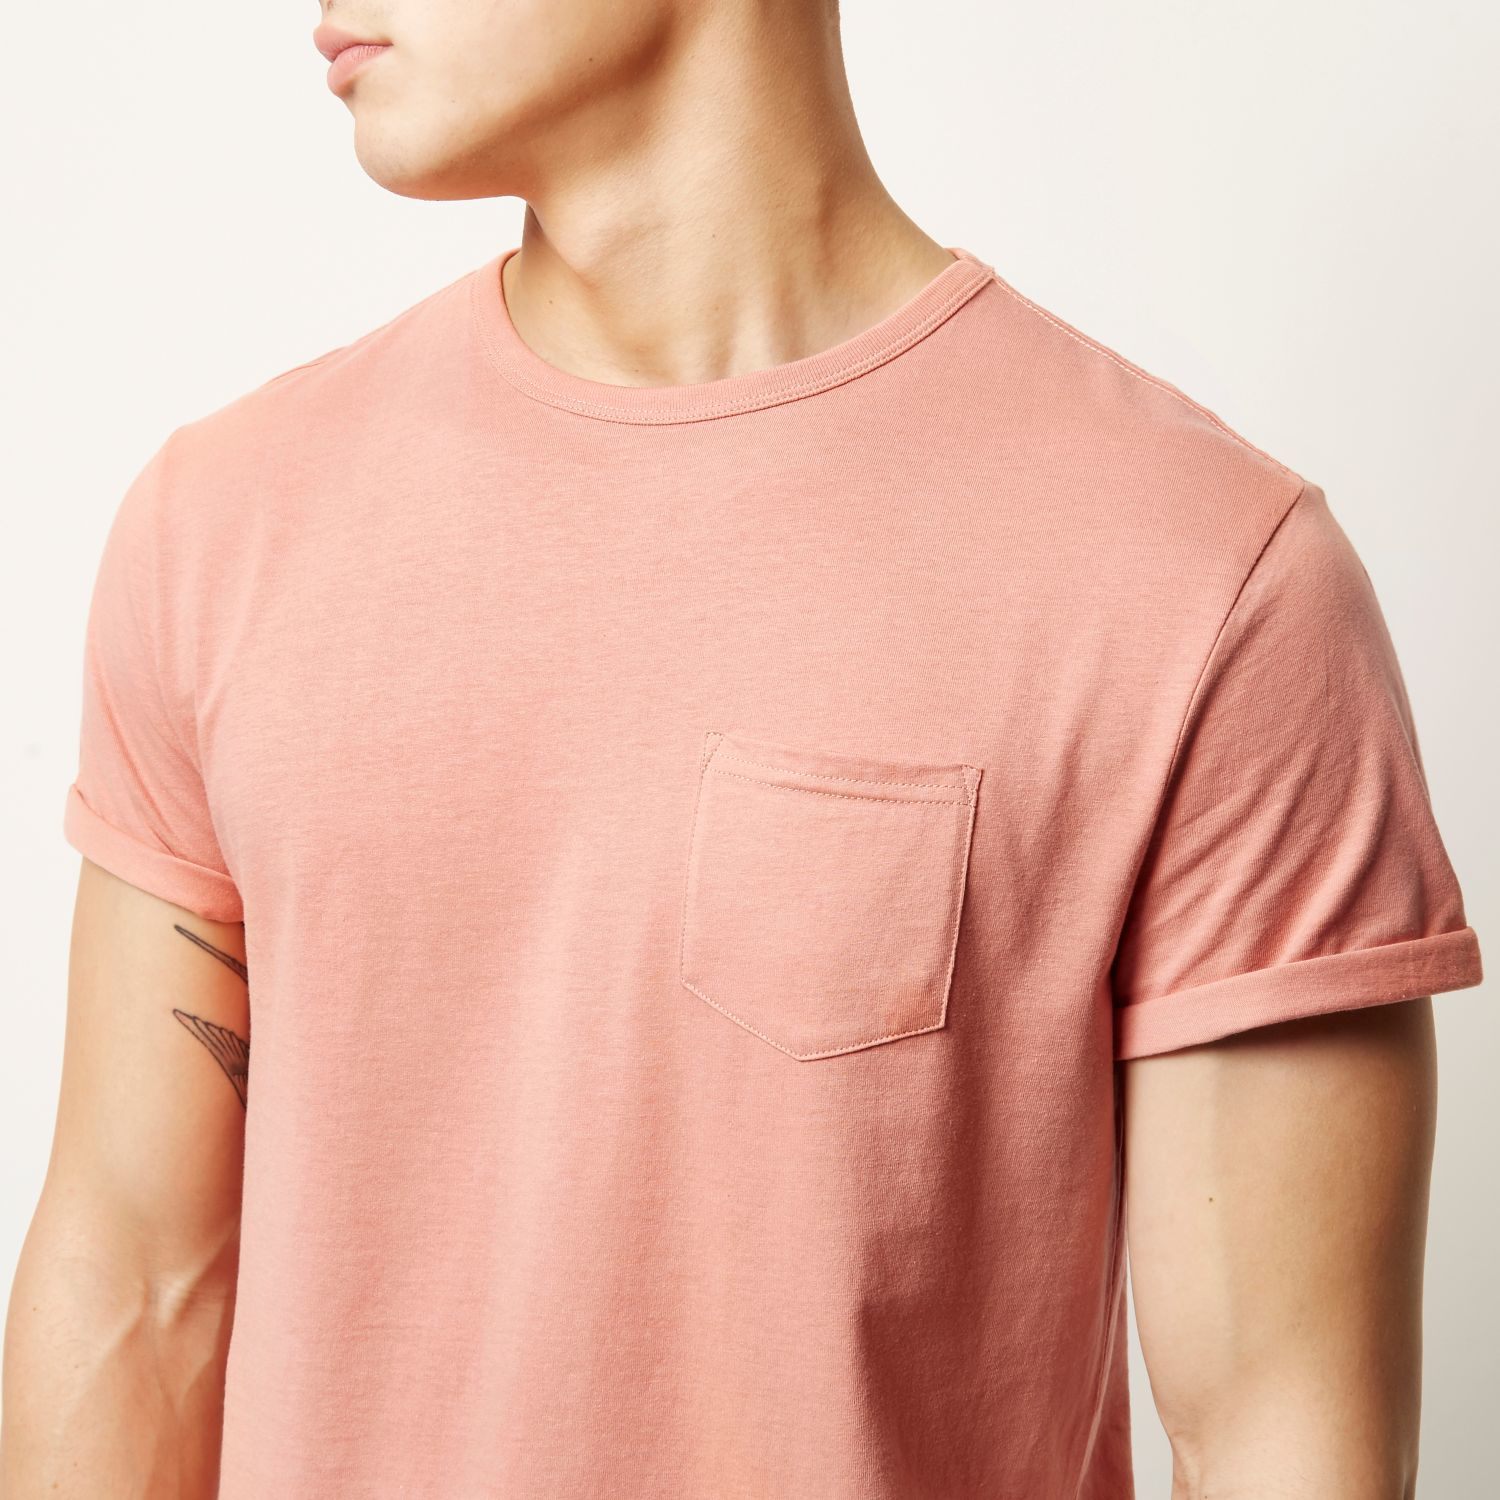 Lyst River Island Salmon Pink Plain Chest Pocket T Shirt In Pink